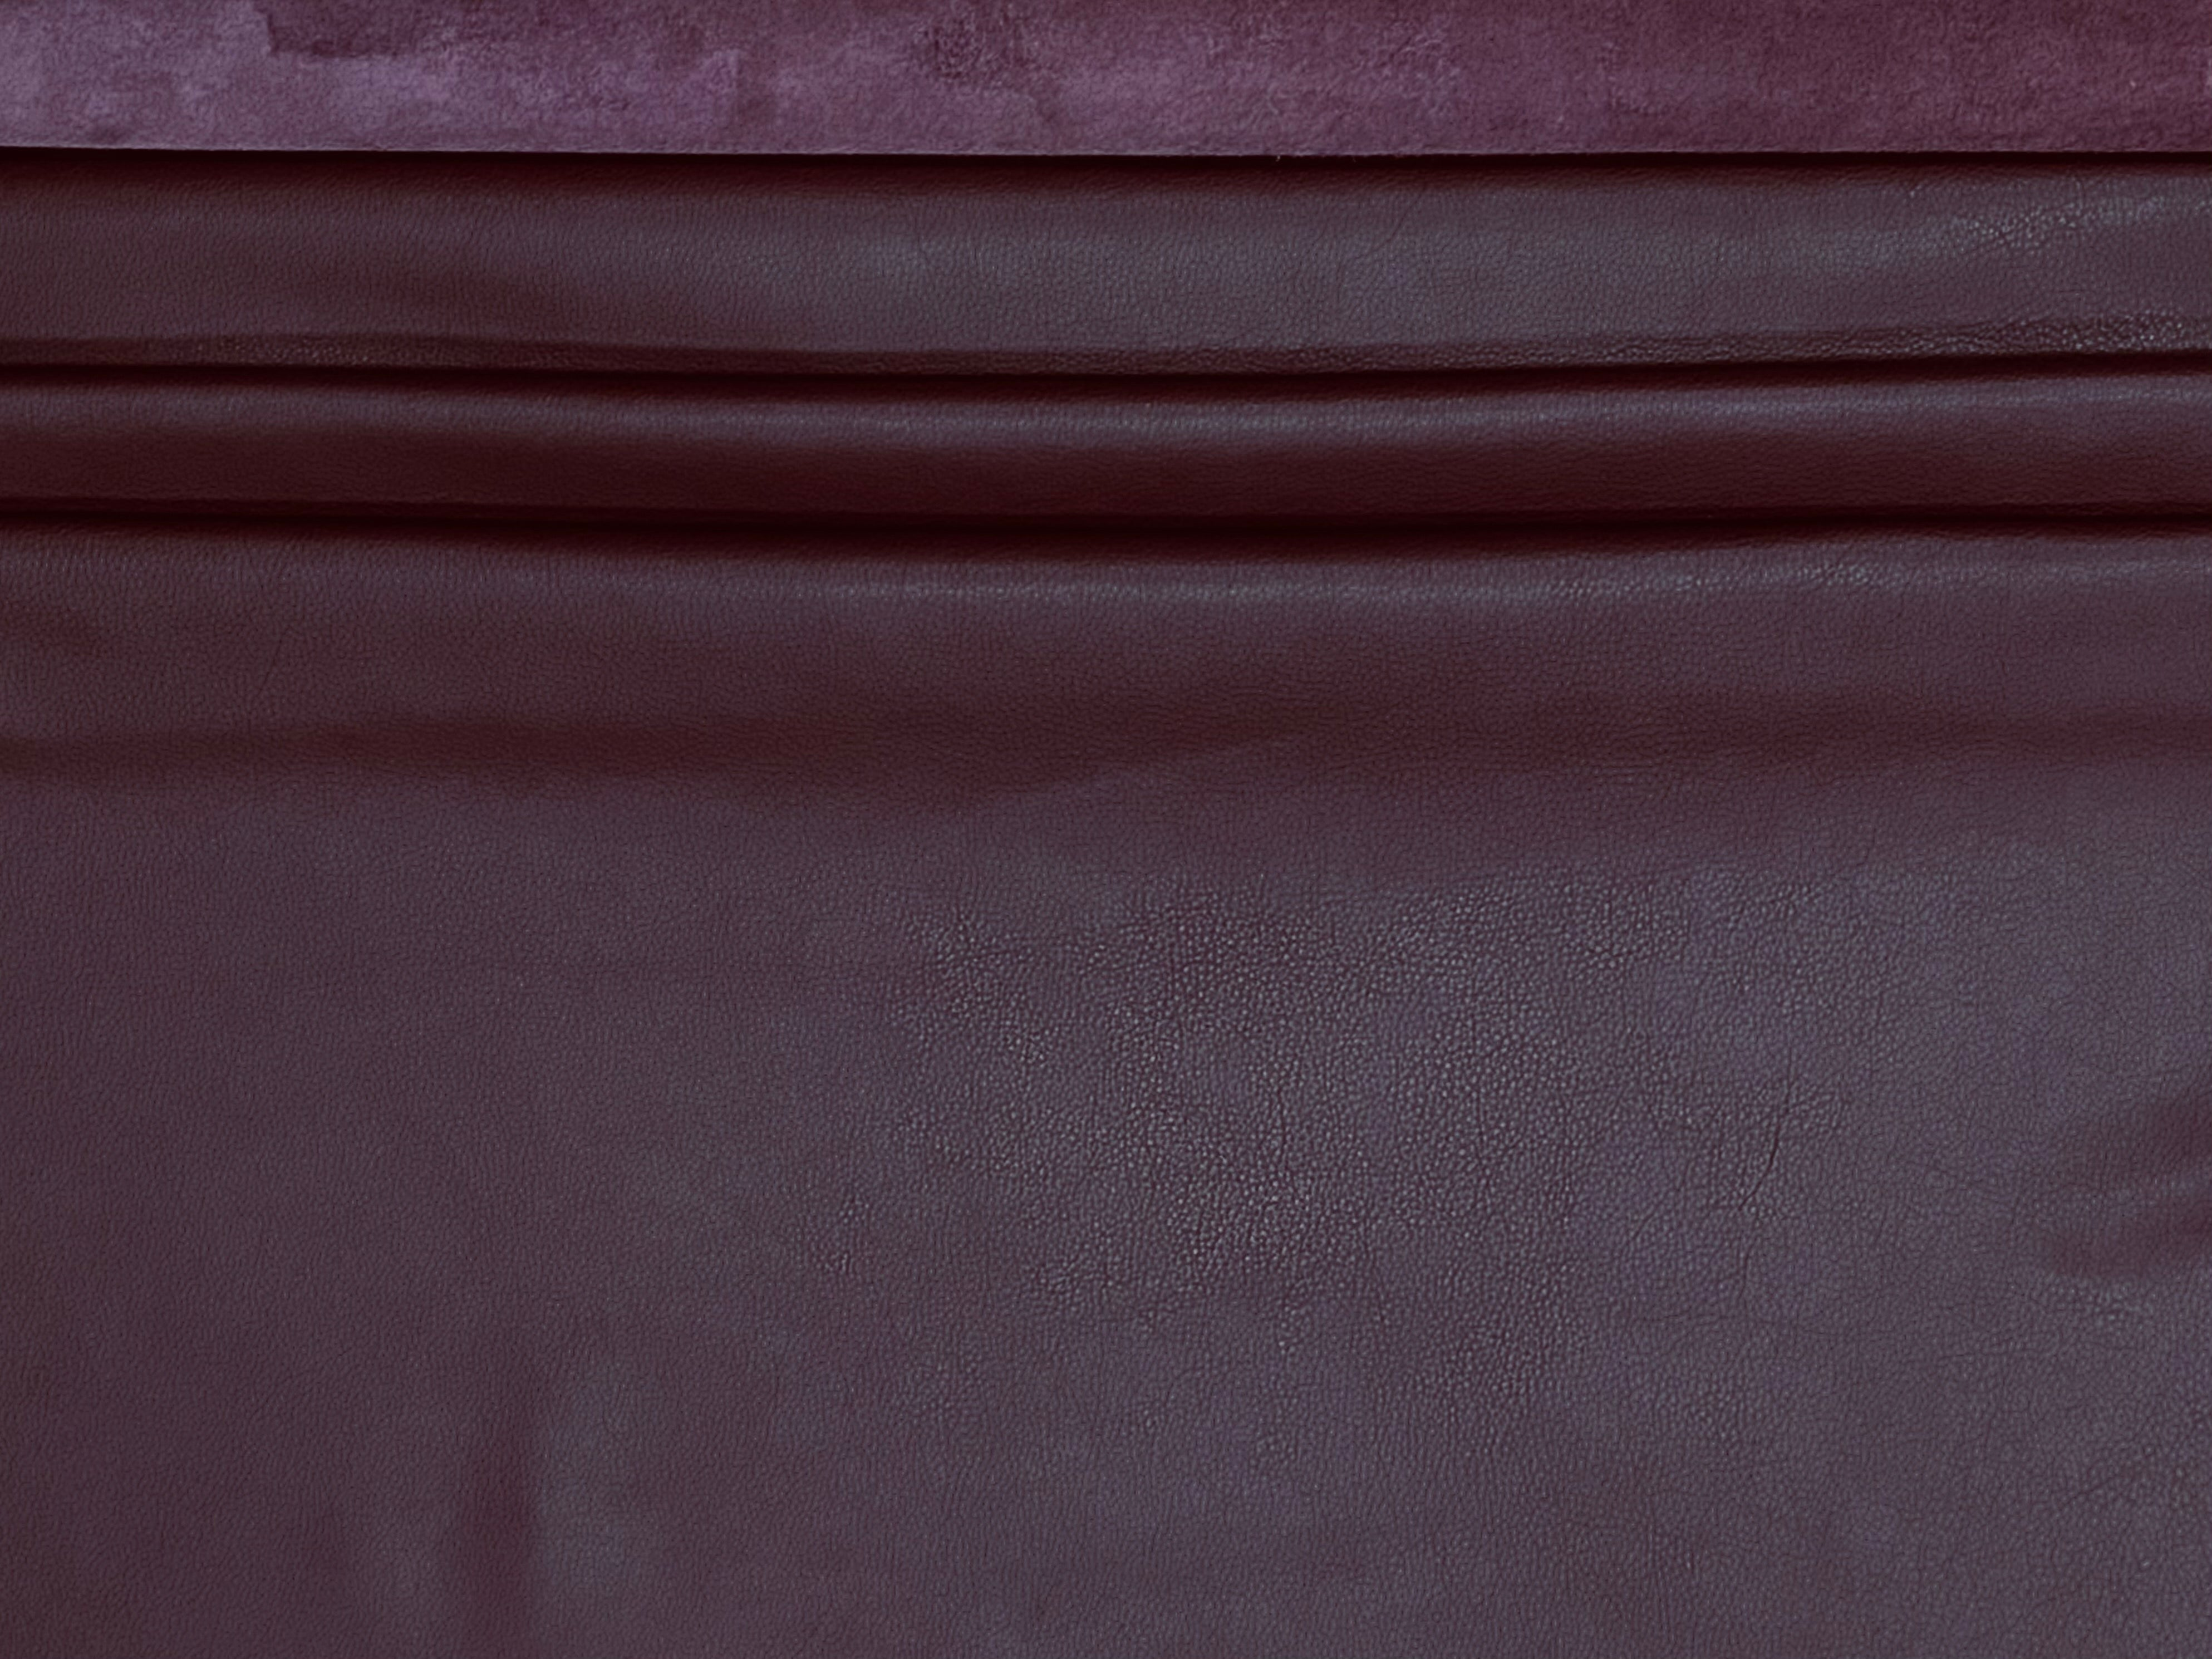 Nassau Burgundy Full Grain Leather Cow Hide : (0.9-1.1mm)This Hide Is Perfect for Leather Crafts, Leather Bags , Leather Accessories.